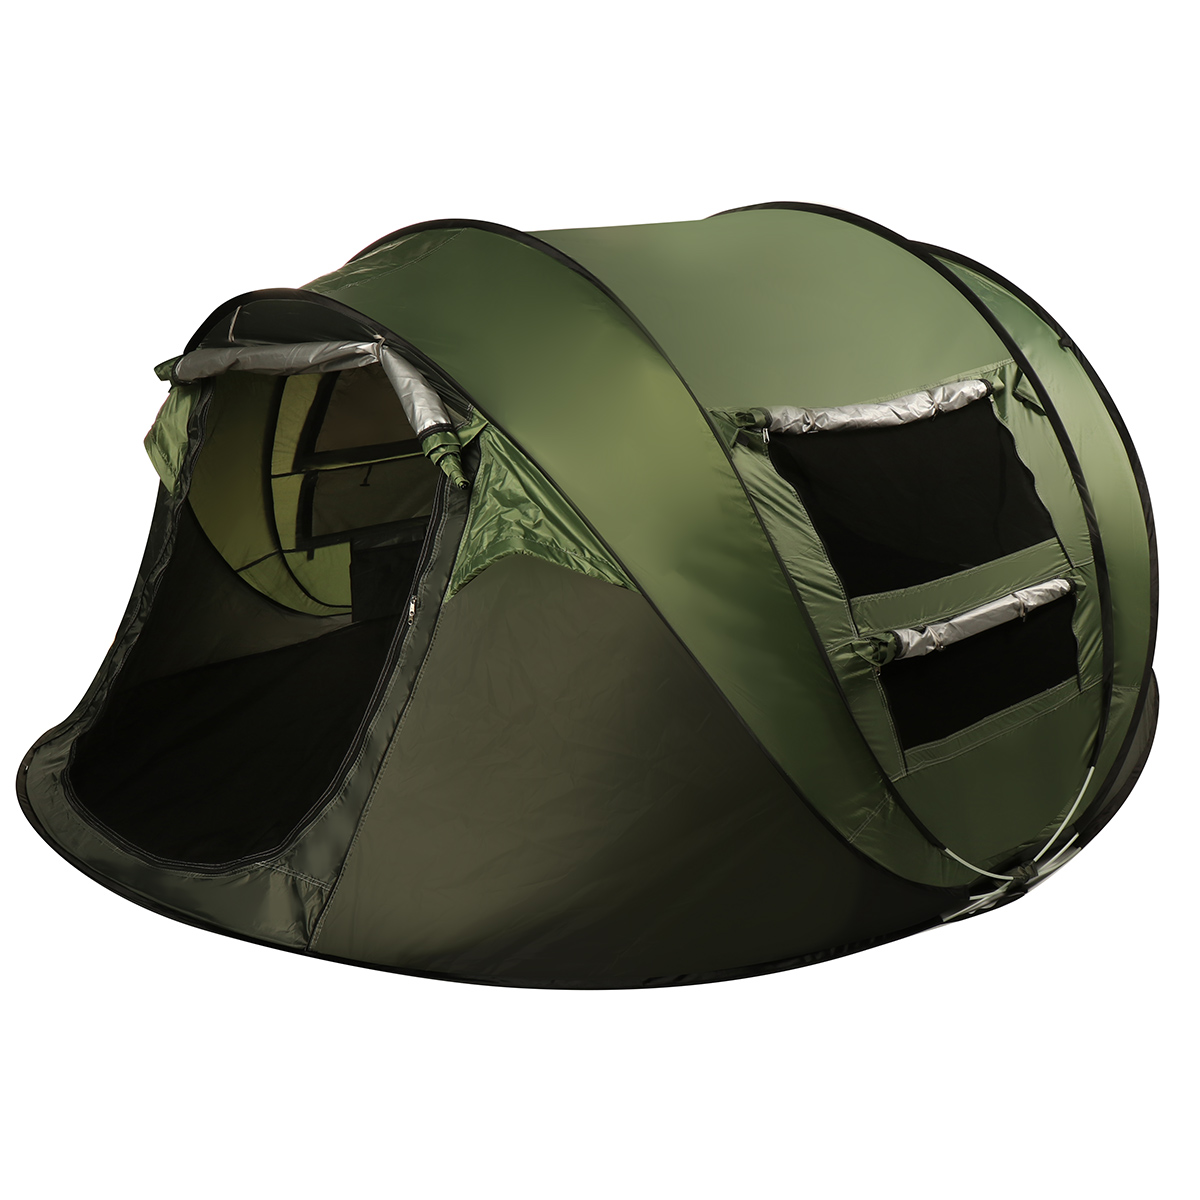 5-8/3-4 Person Camping Dome Tent with Waterproof Automatic ...